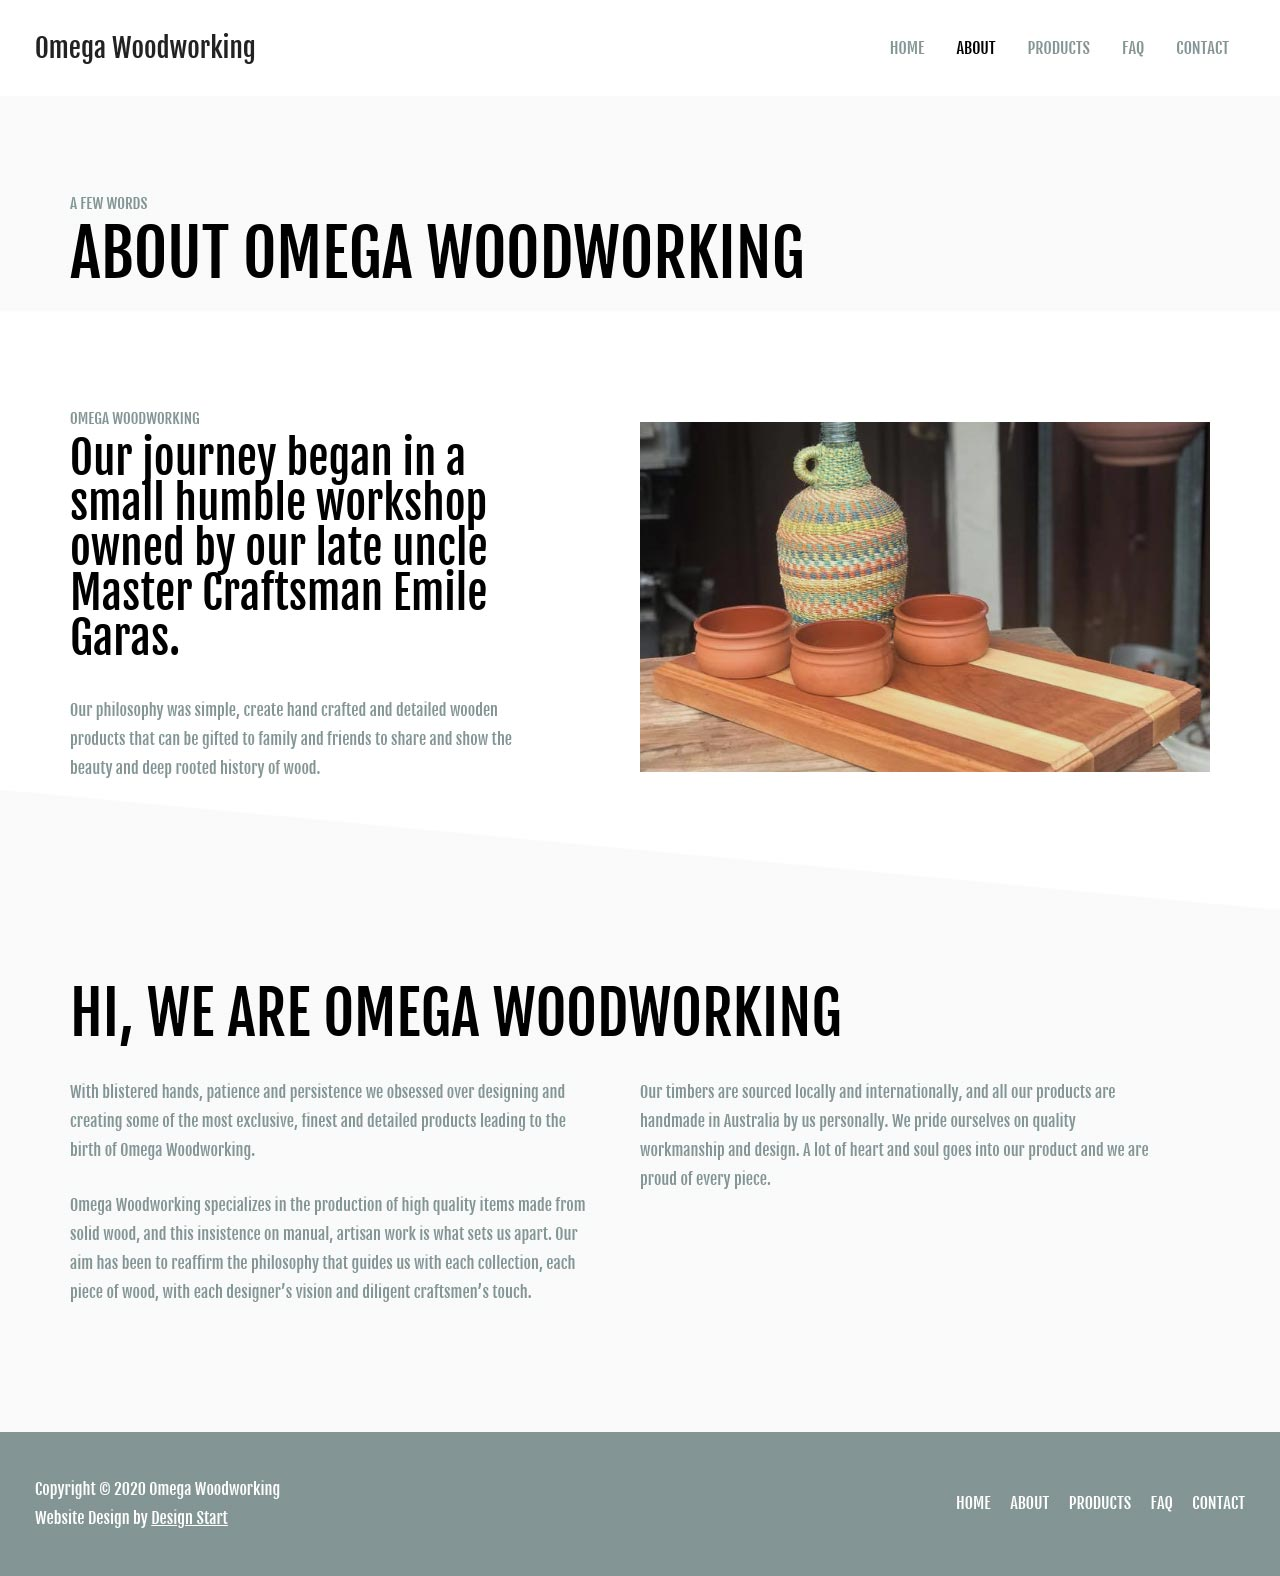 Web Design Services Portfolio: Omega Woodworking